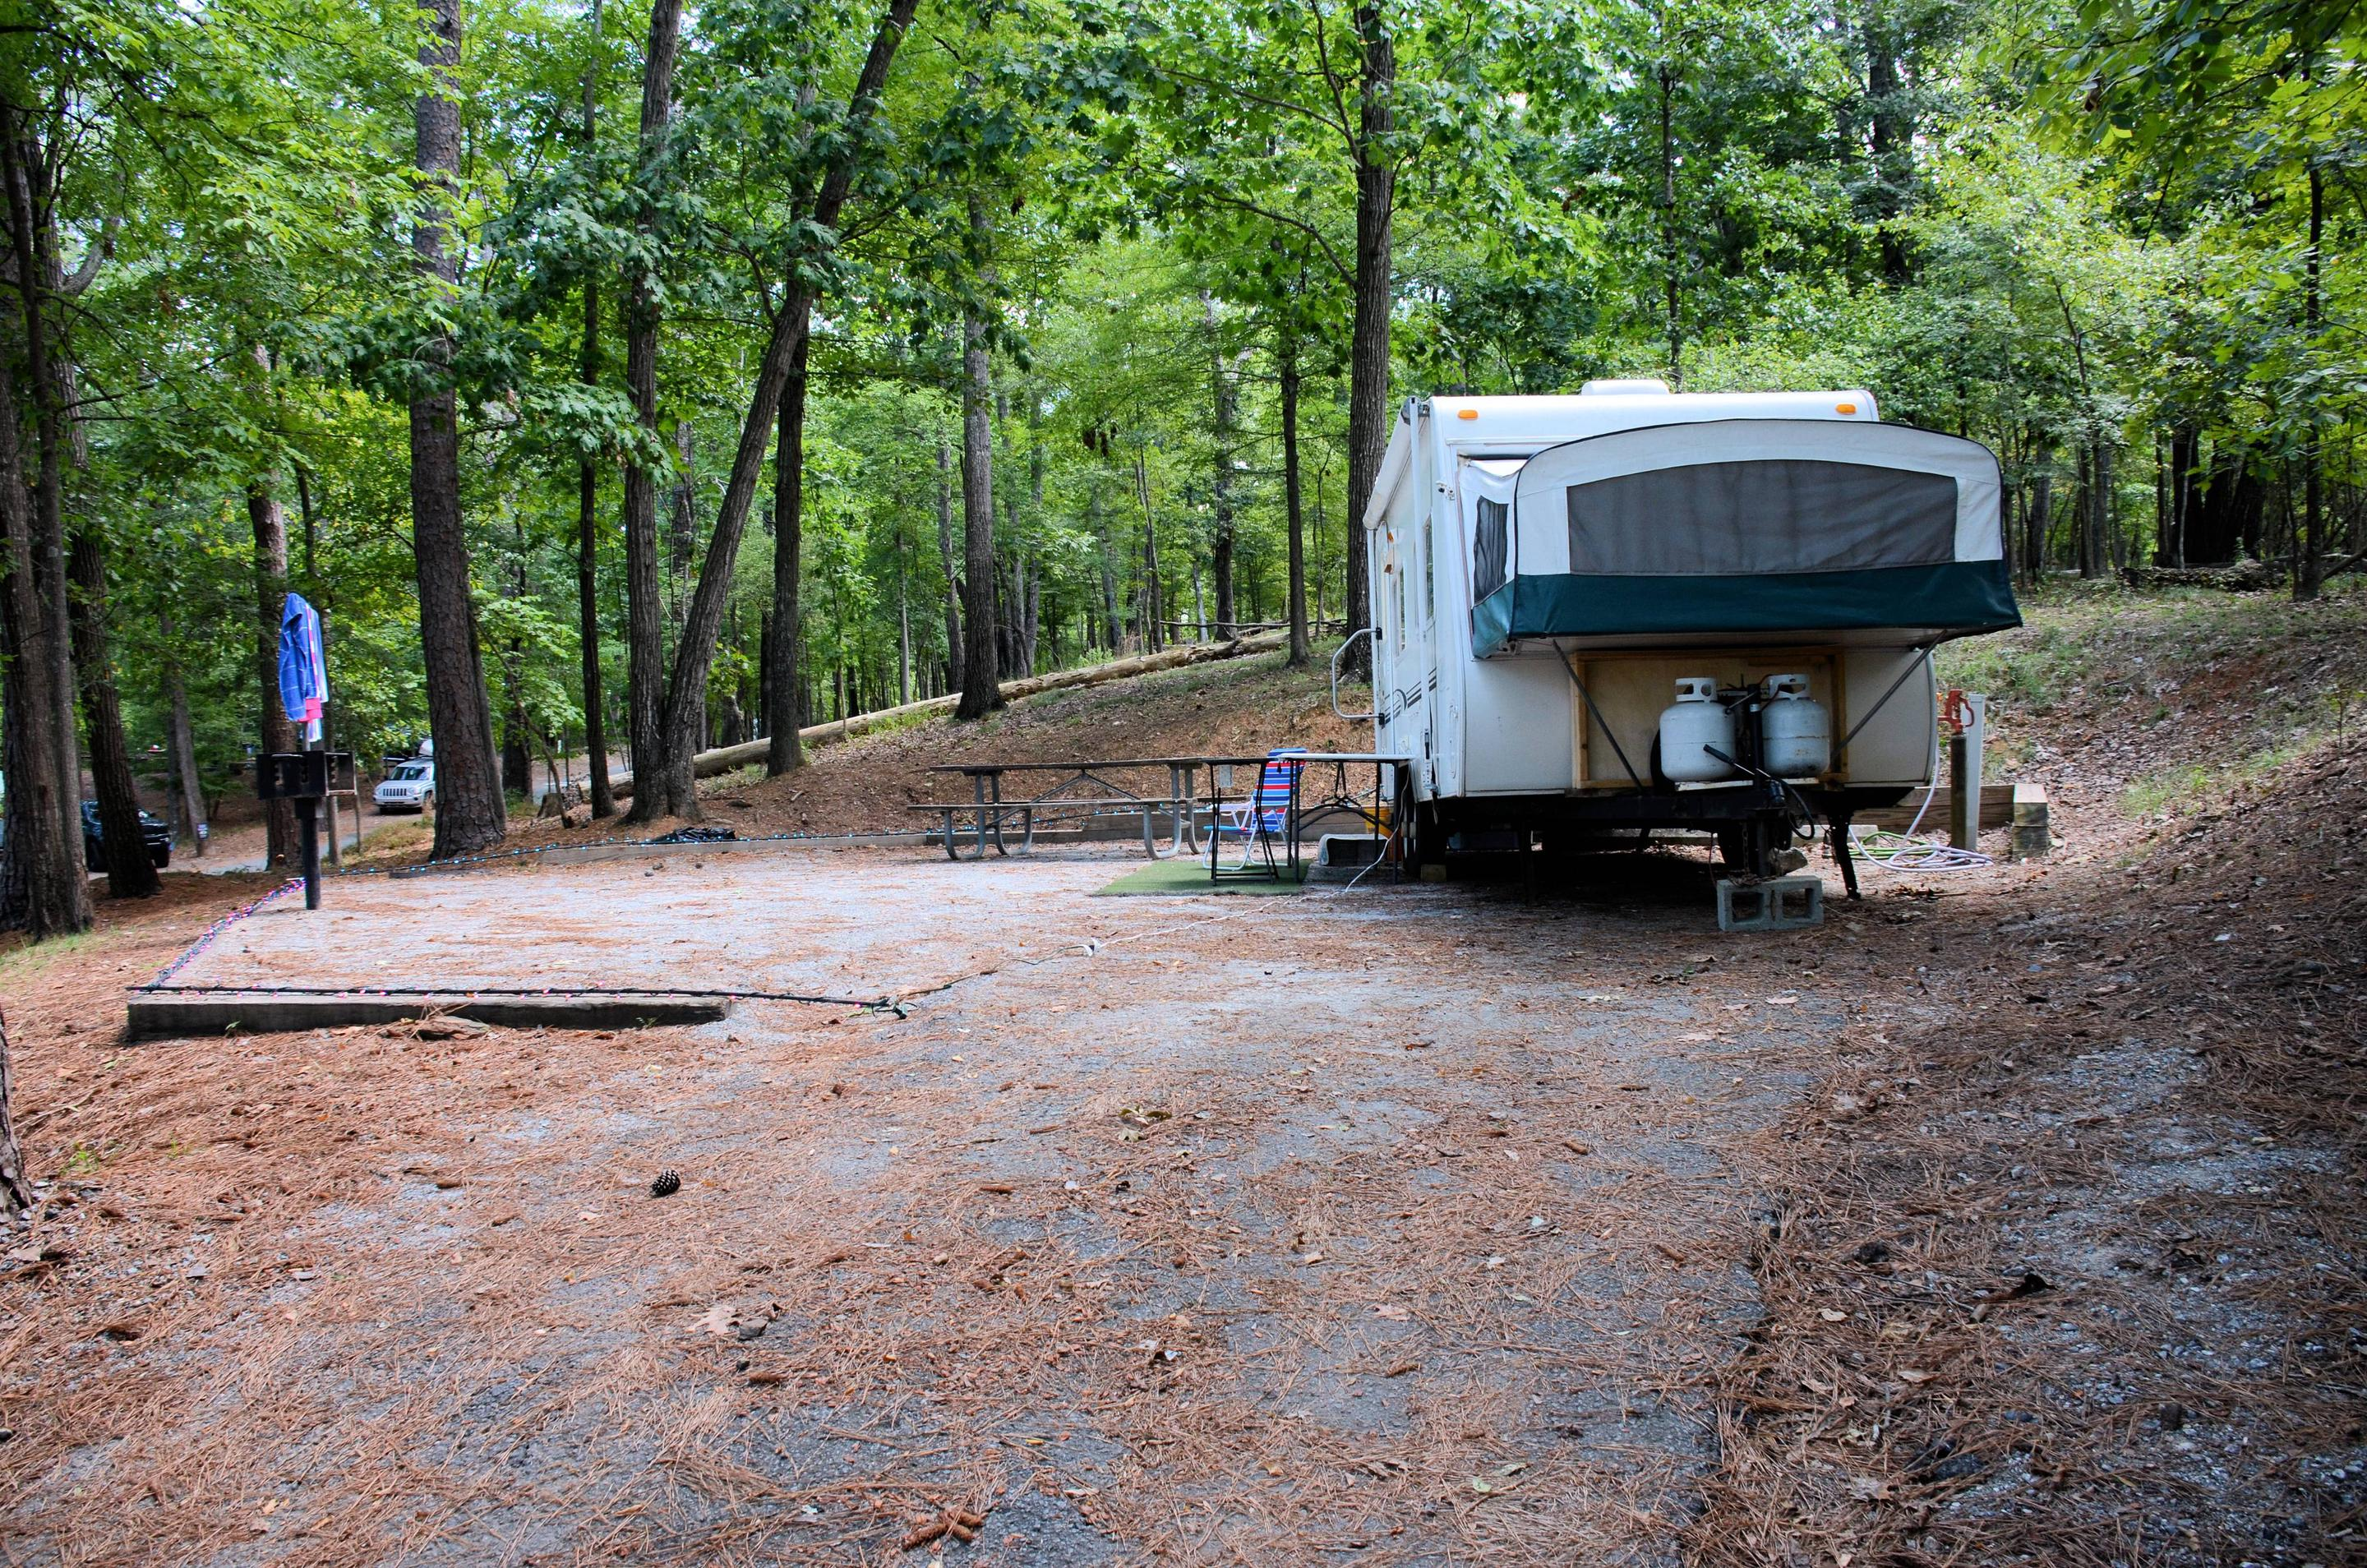 Awning-side clearance, campsite view.McKinney Campground, campsite 29.